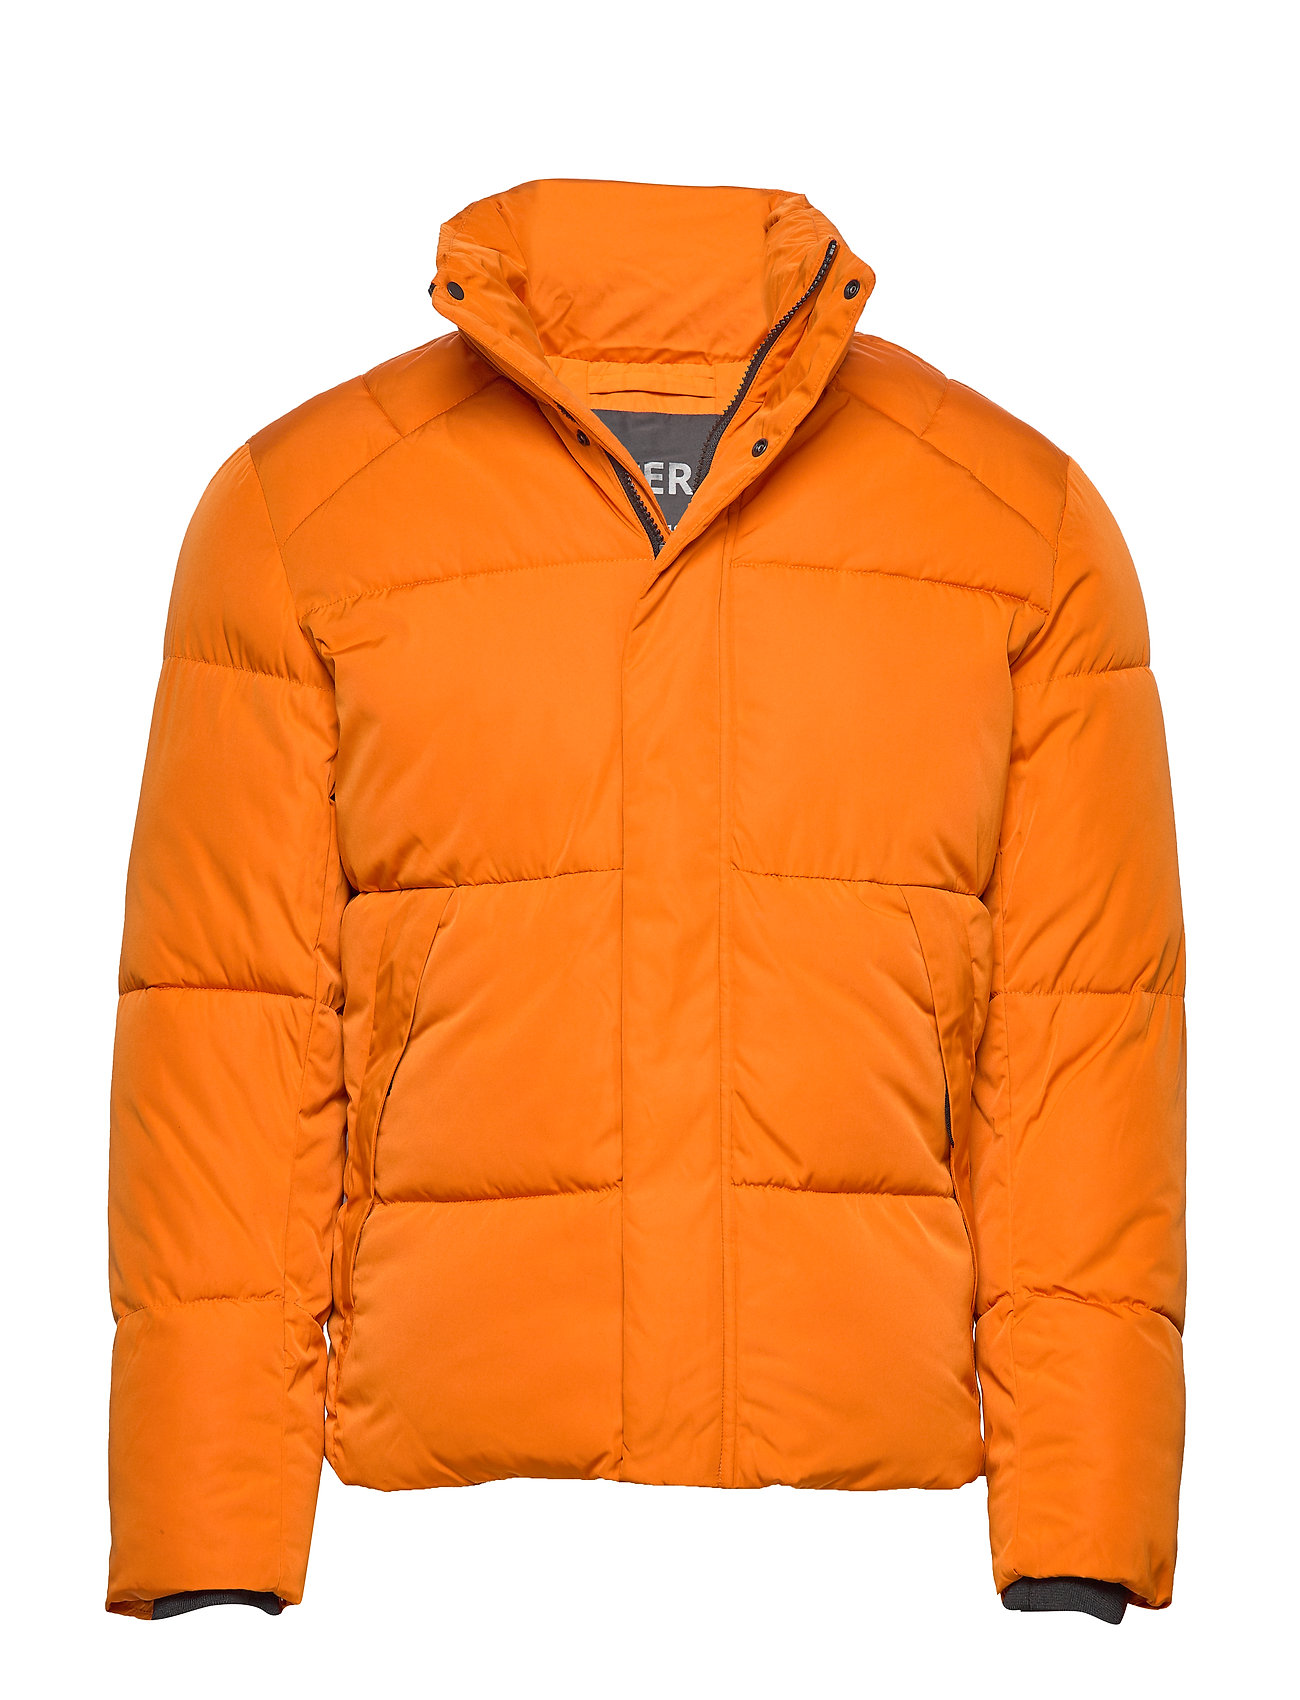 Selected Homme SLHPUFFER JACKET W - AUTUMN MAPLE